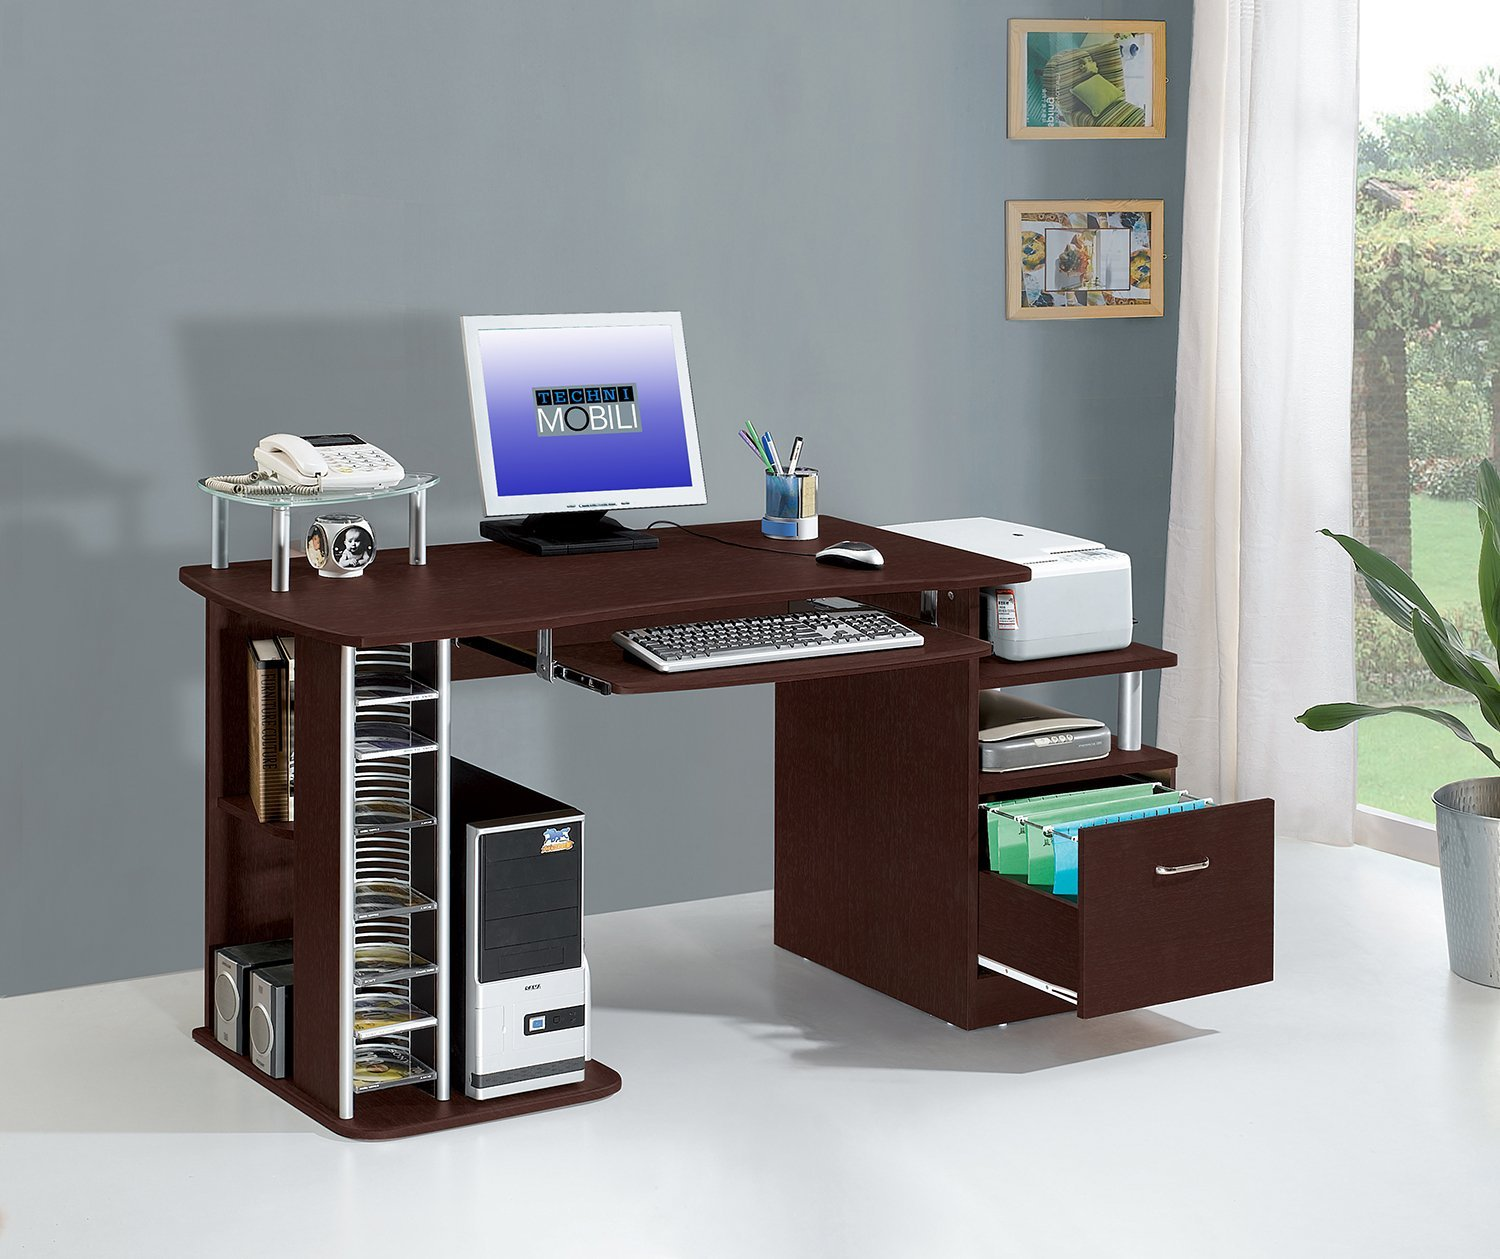 Top Rated Home Office Desk With File Drawer: Small But Storage Aplenty